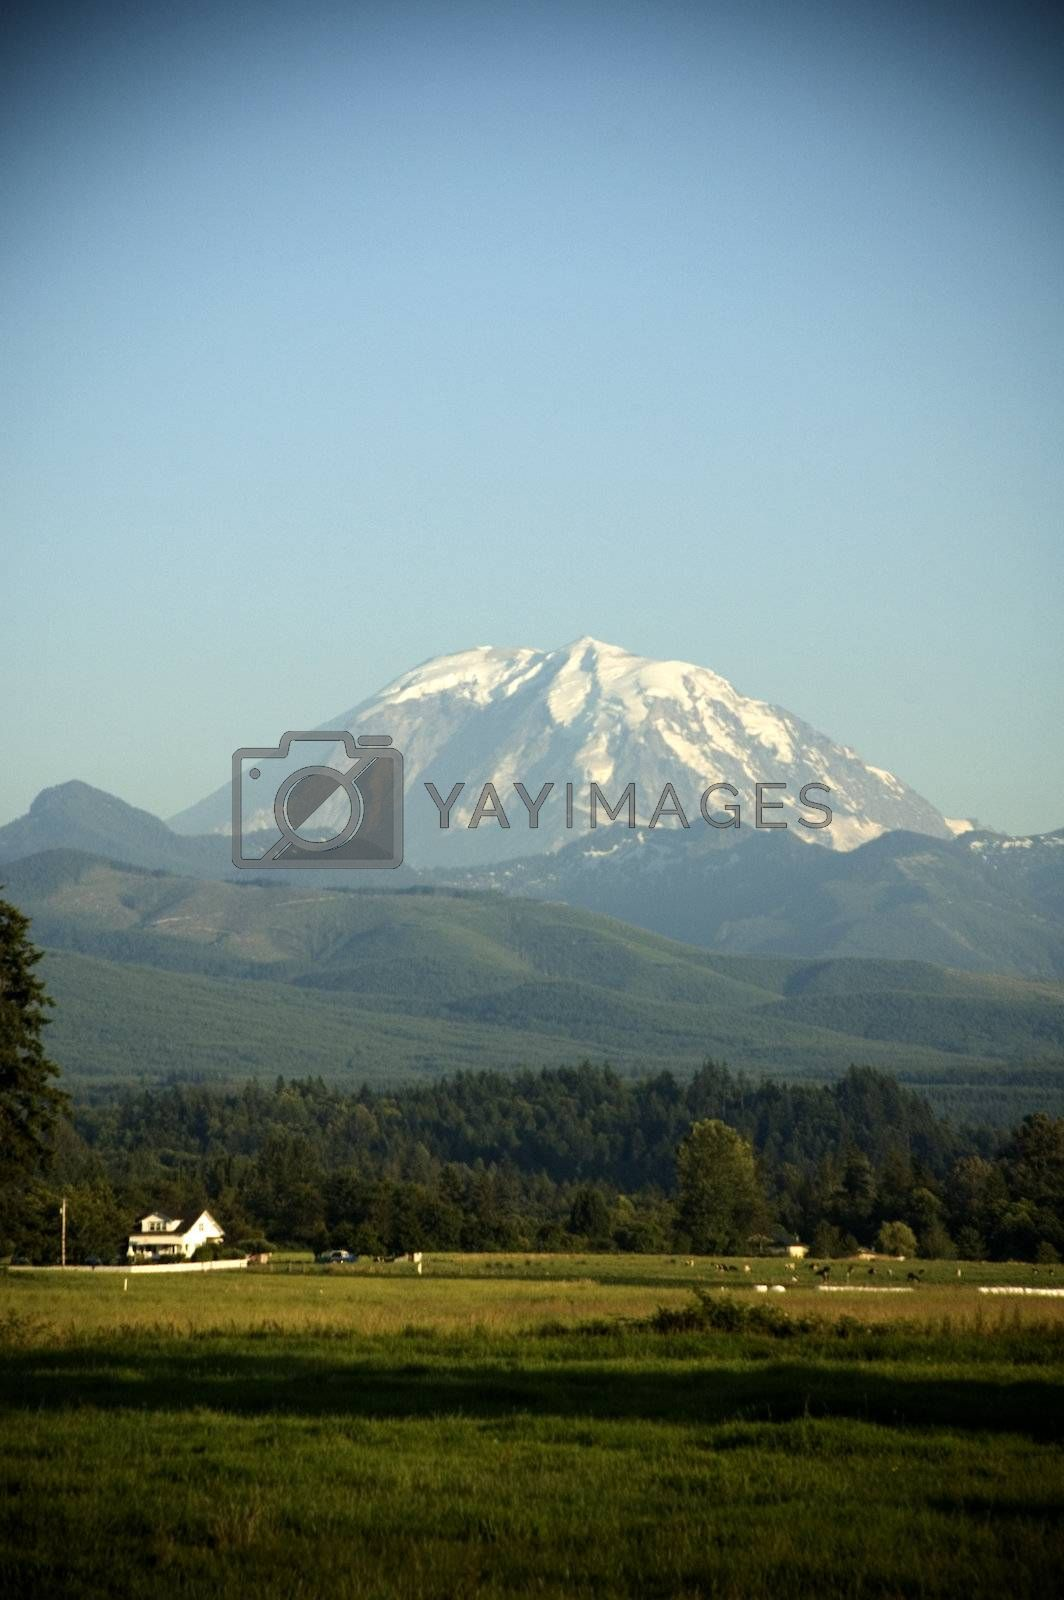 Mount Rainier towers over a picturesque farm with cattle and fields near Enumclaw, Washington.